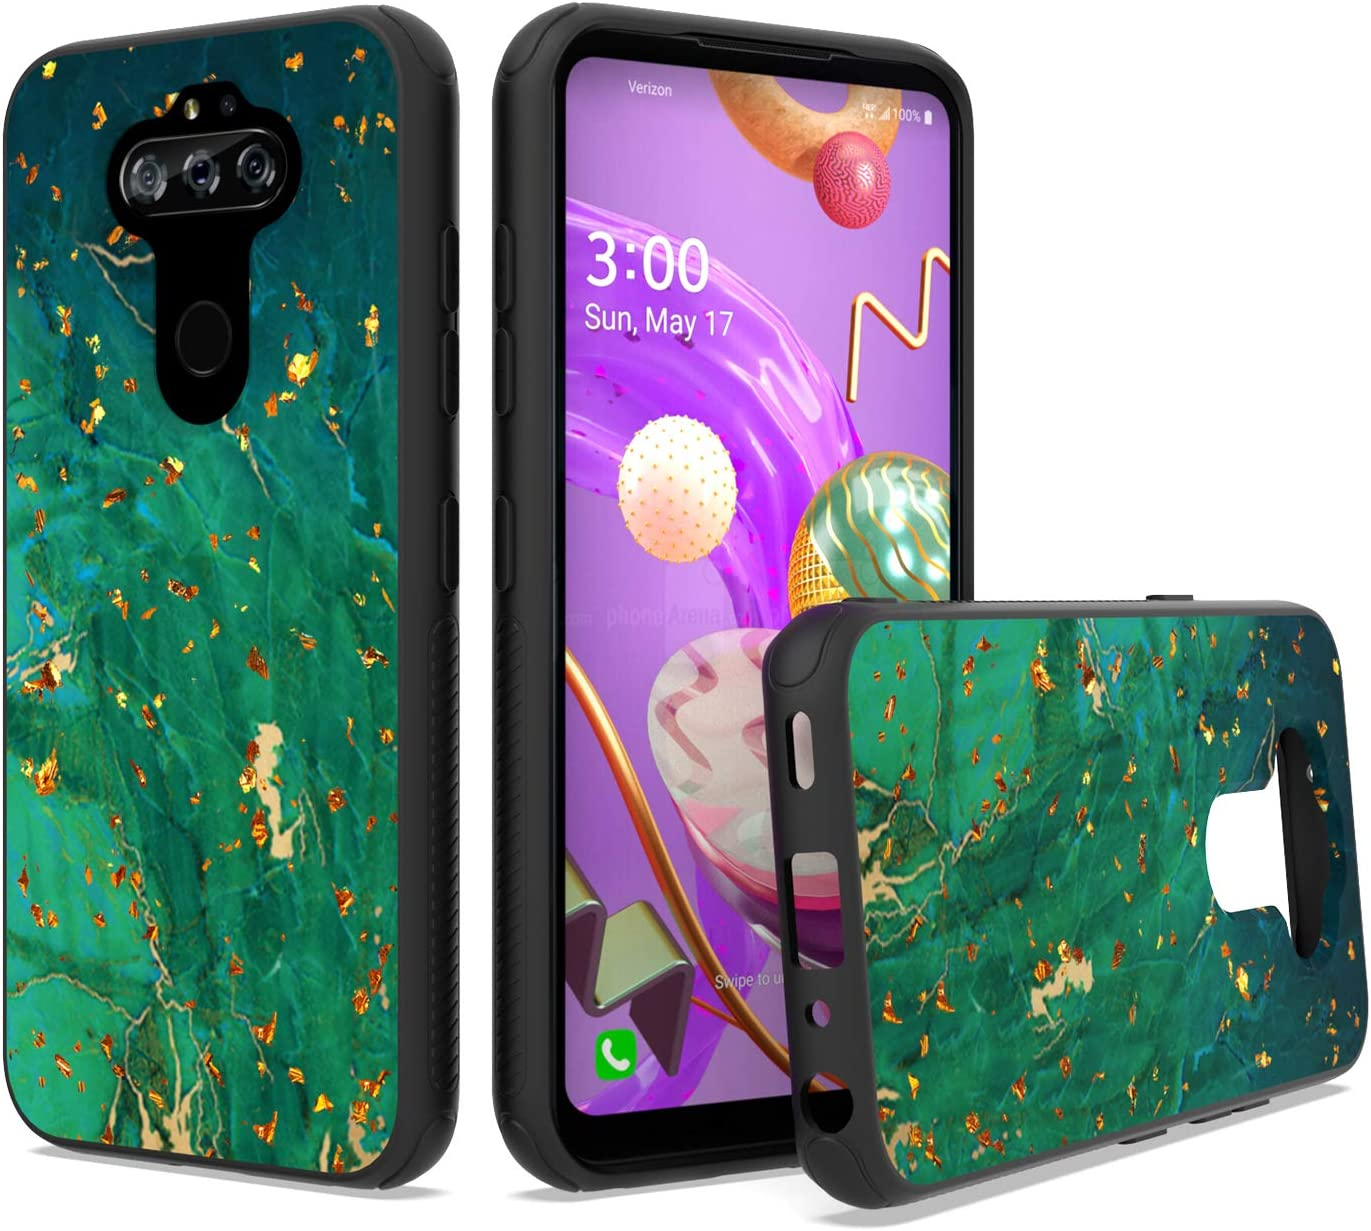 UNC Pro Cell Phone Case for LG Aristo 5 / Aristo 5 Plus + / K31 / Phoenix 5/ Fortune 3 / Tribute Monarch / K8x / Risio 4, Emerald Marble Gold Foil Embedded TPU Hybrid Case, Shockproof Bumper Cover